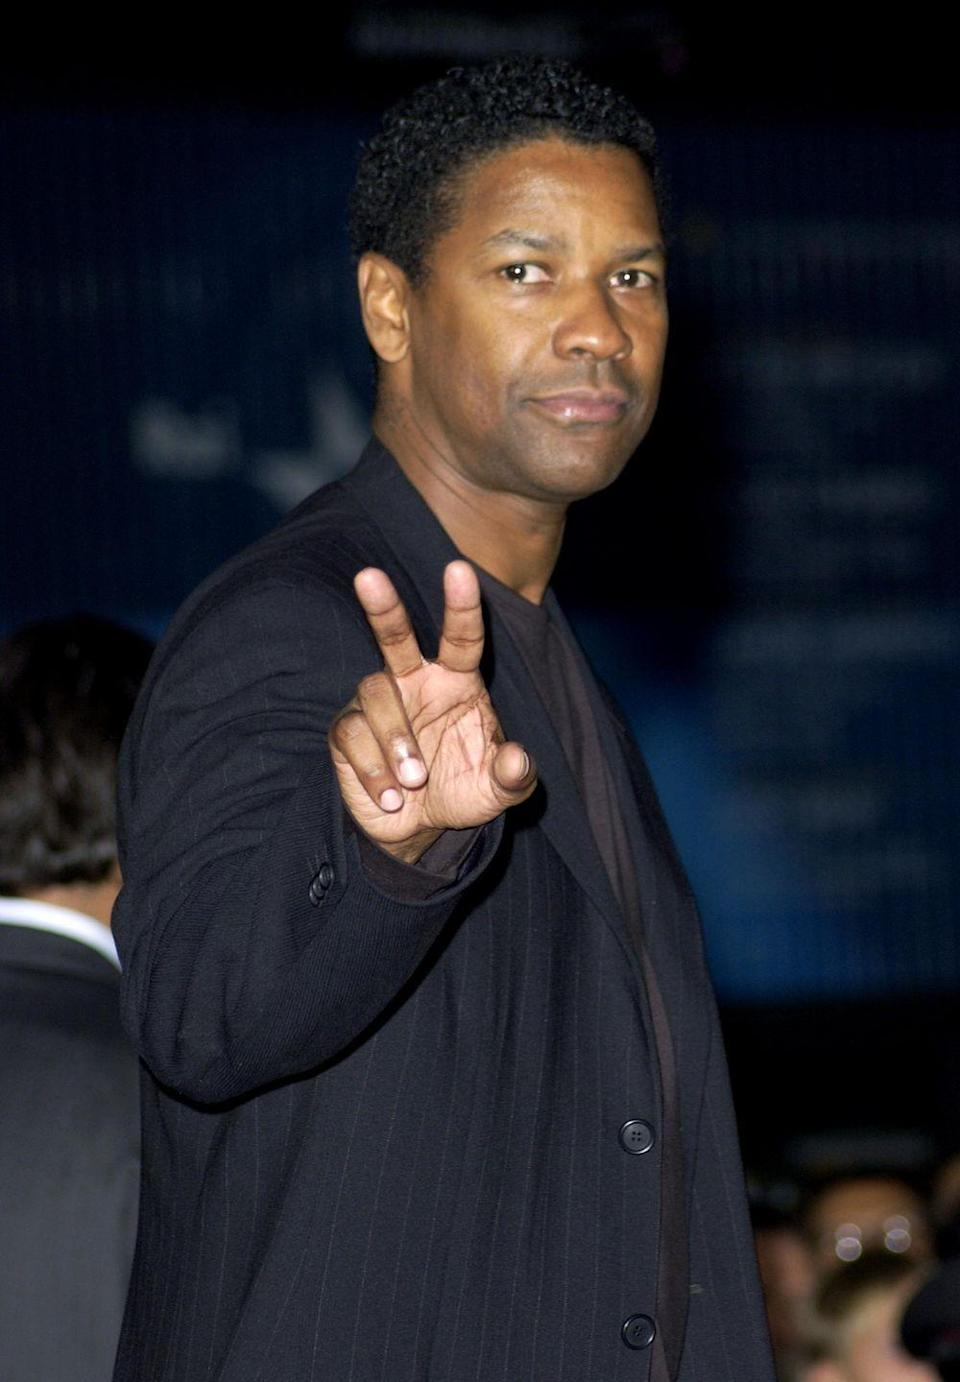 <p>Denzel Washington is known for serious, dramatic roles—and for starring in one hit after another. His 2001 film <em>Training Day</em> was released shortly after another big hit: <em>Remember the Titans</em>.</p>